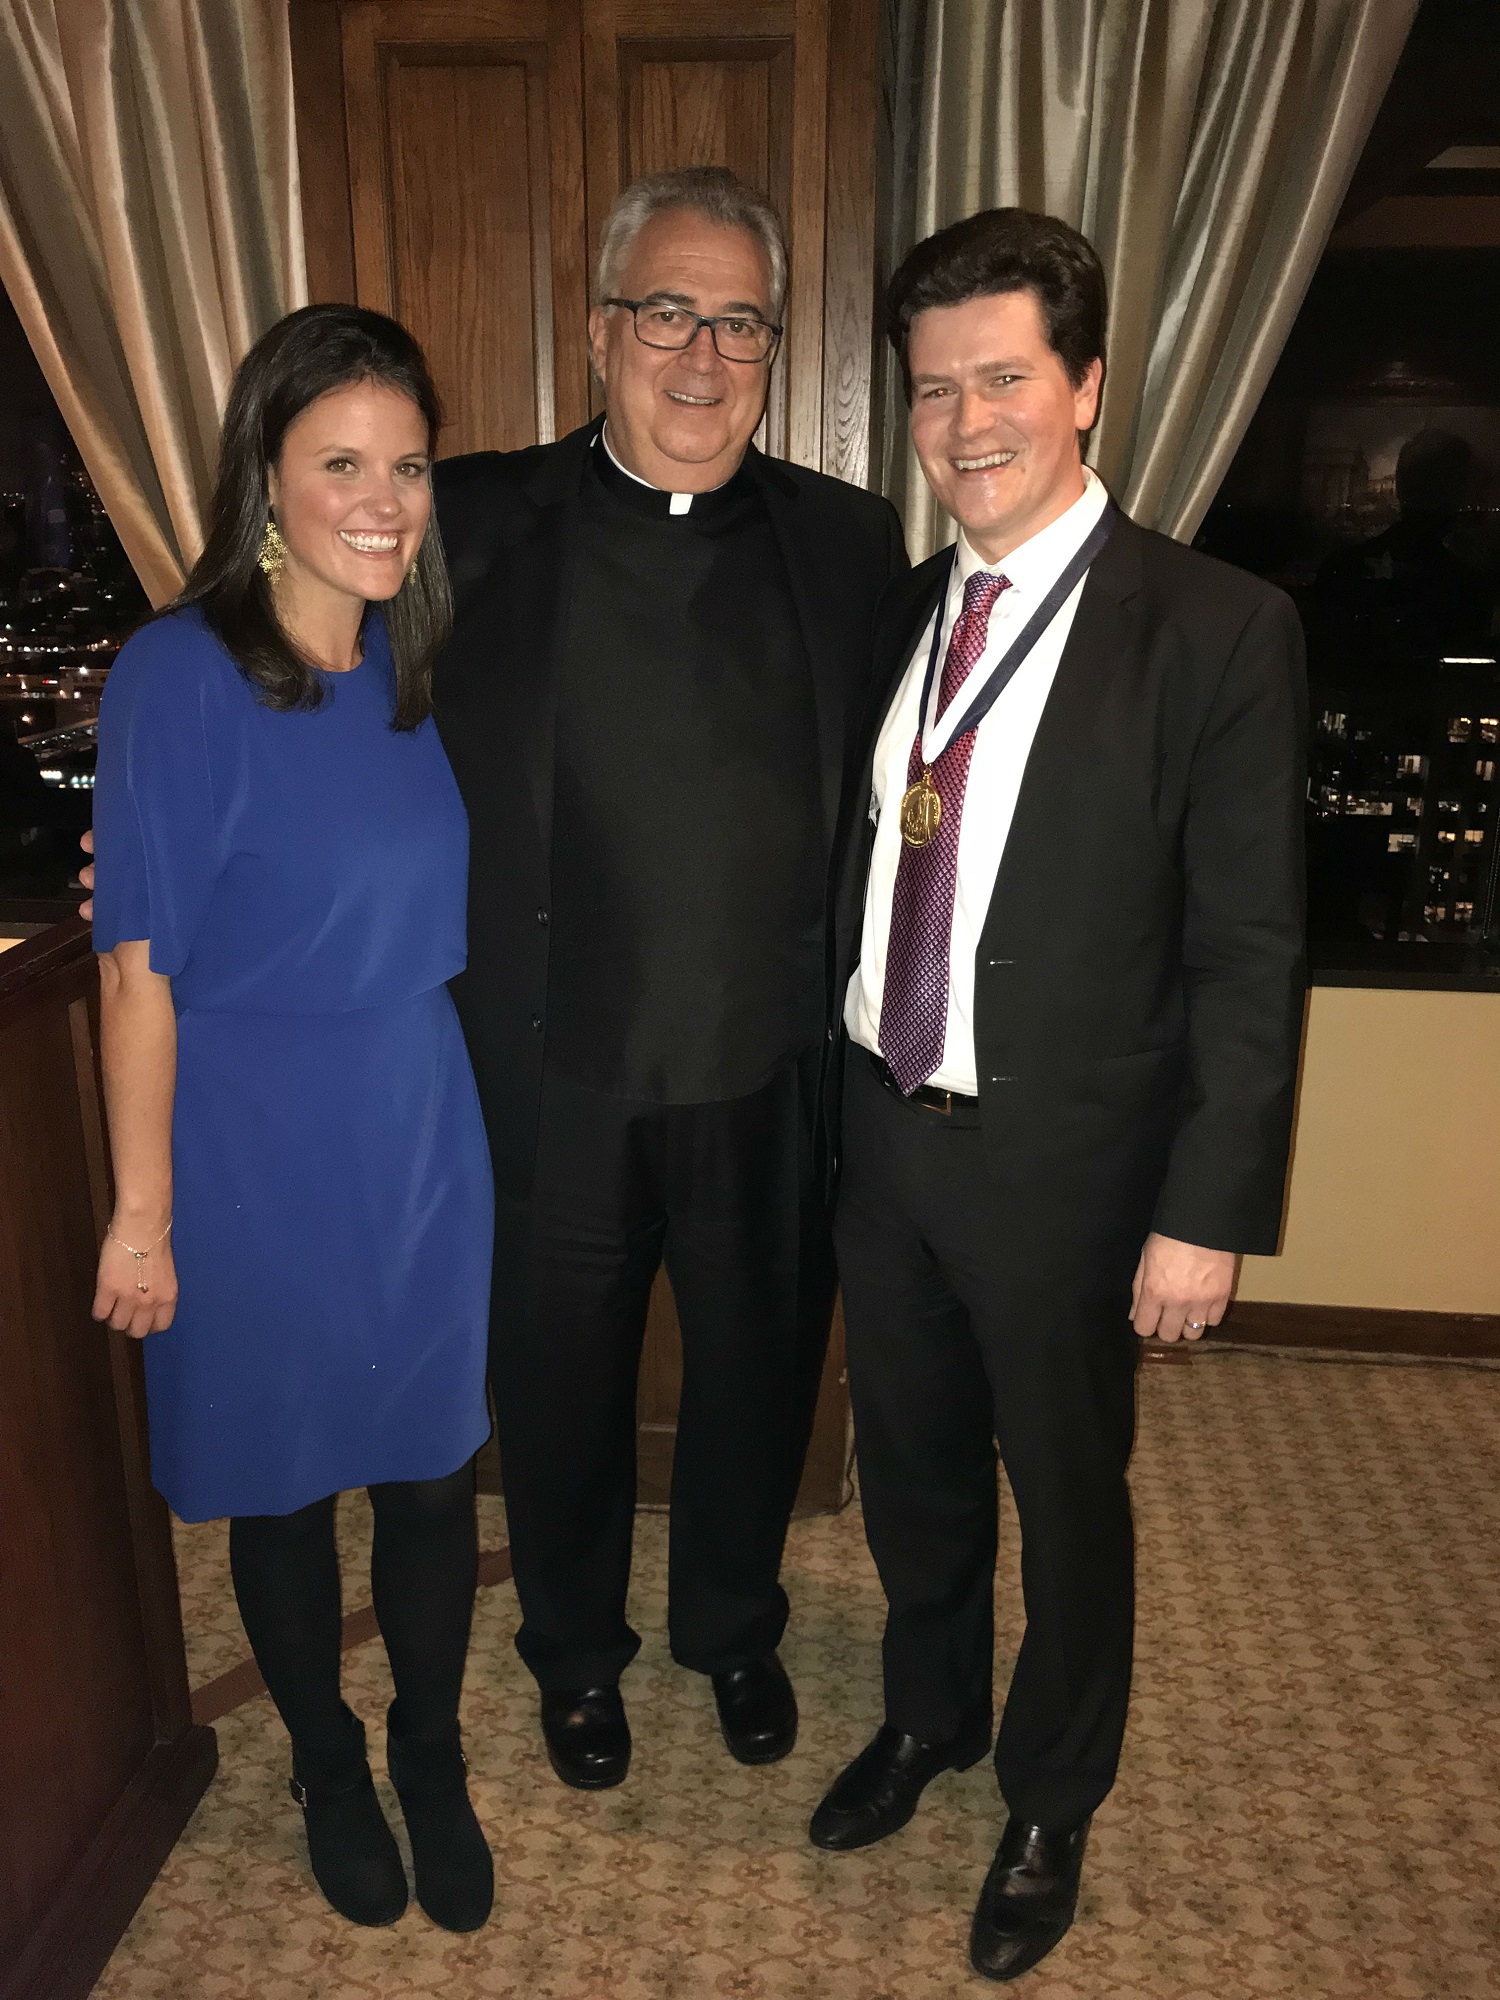 Kevin Curley '09 and his wife, Courtney '09, with Villanova University President the Rev. Peter M. Donohue, OSA, PhD